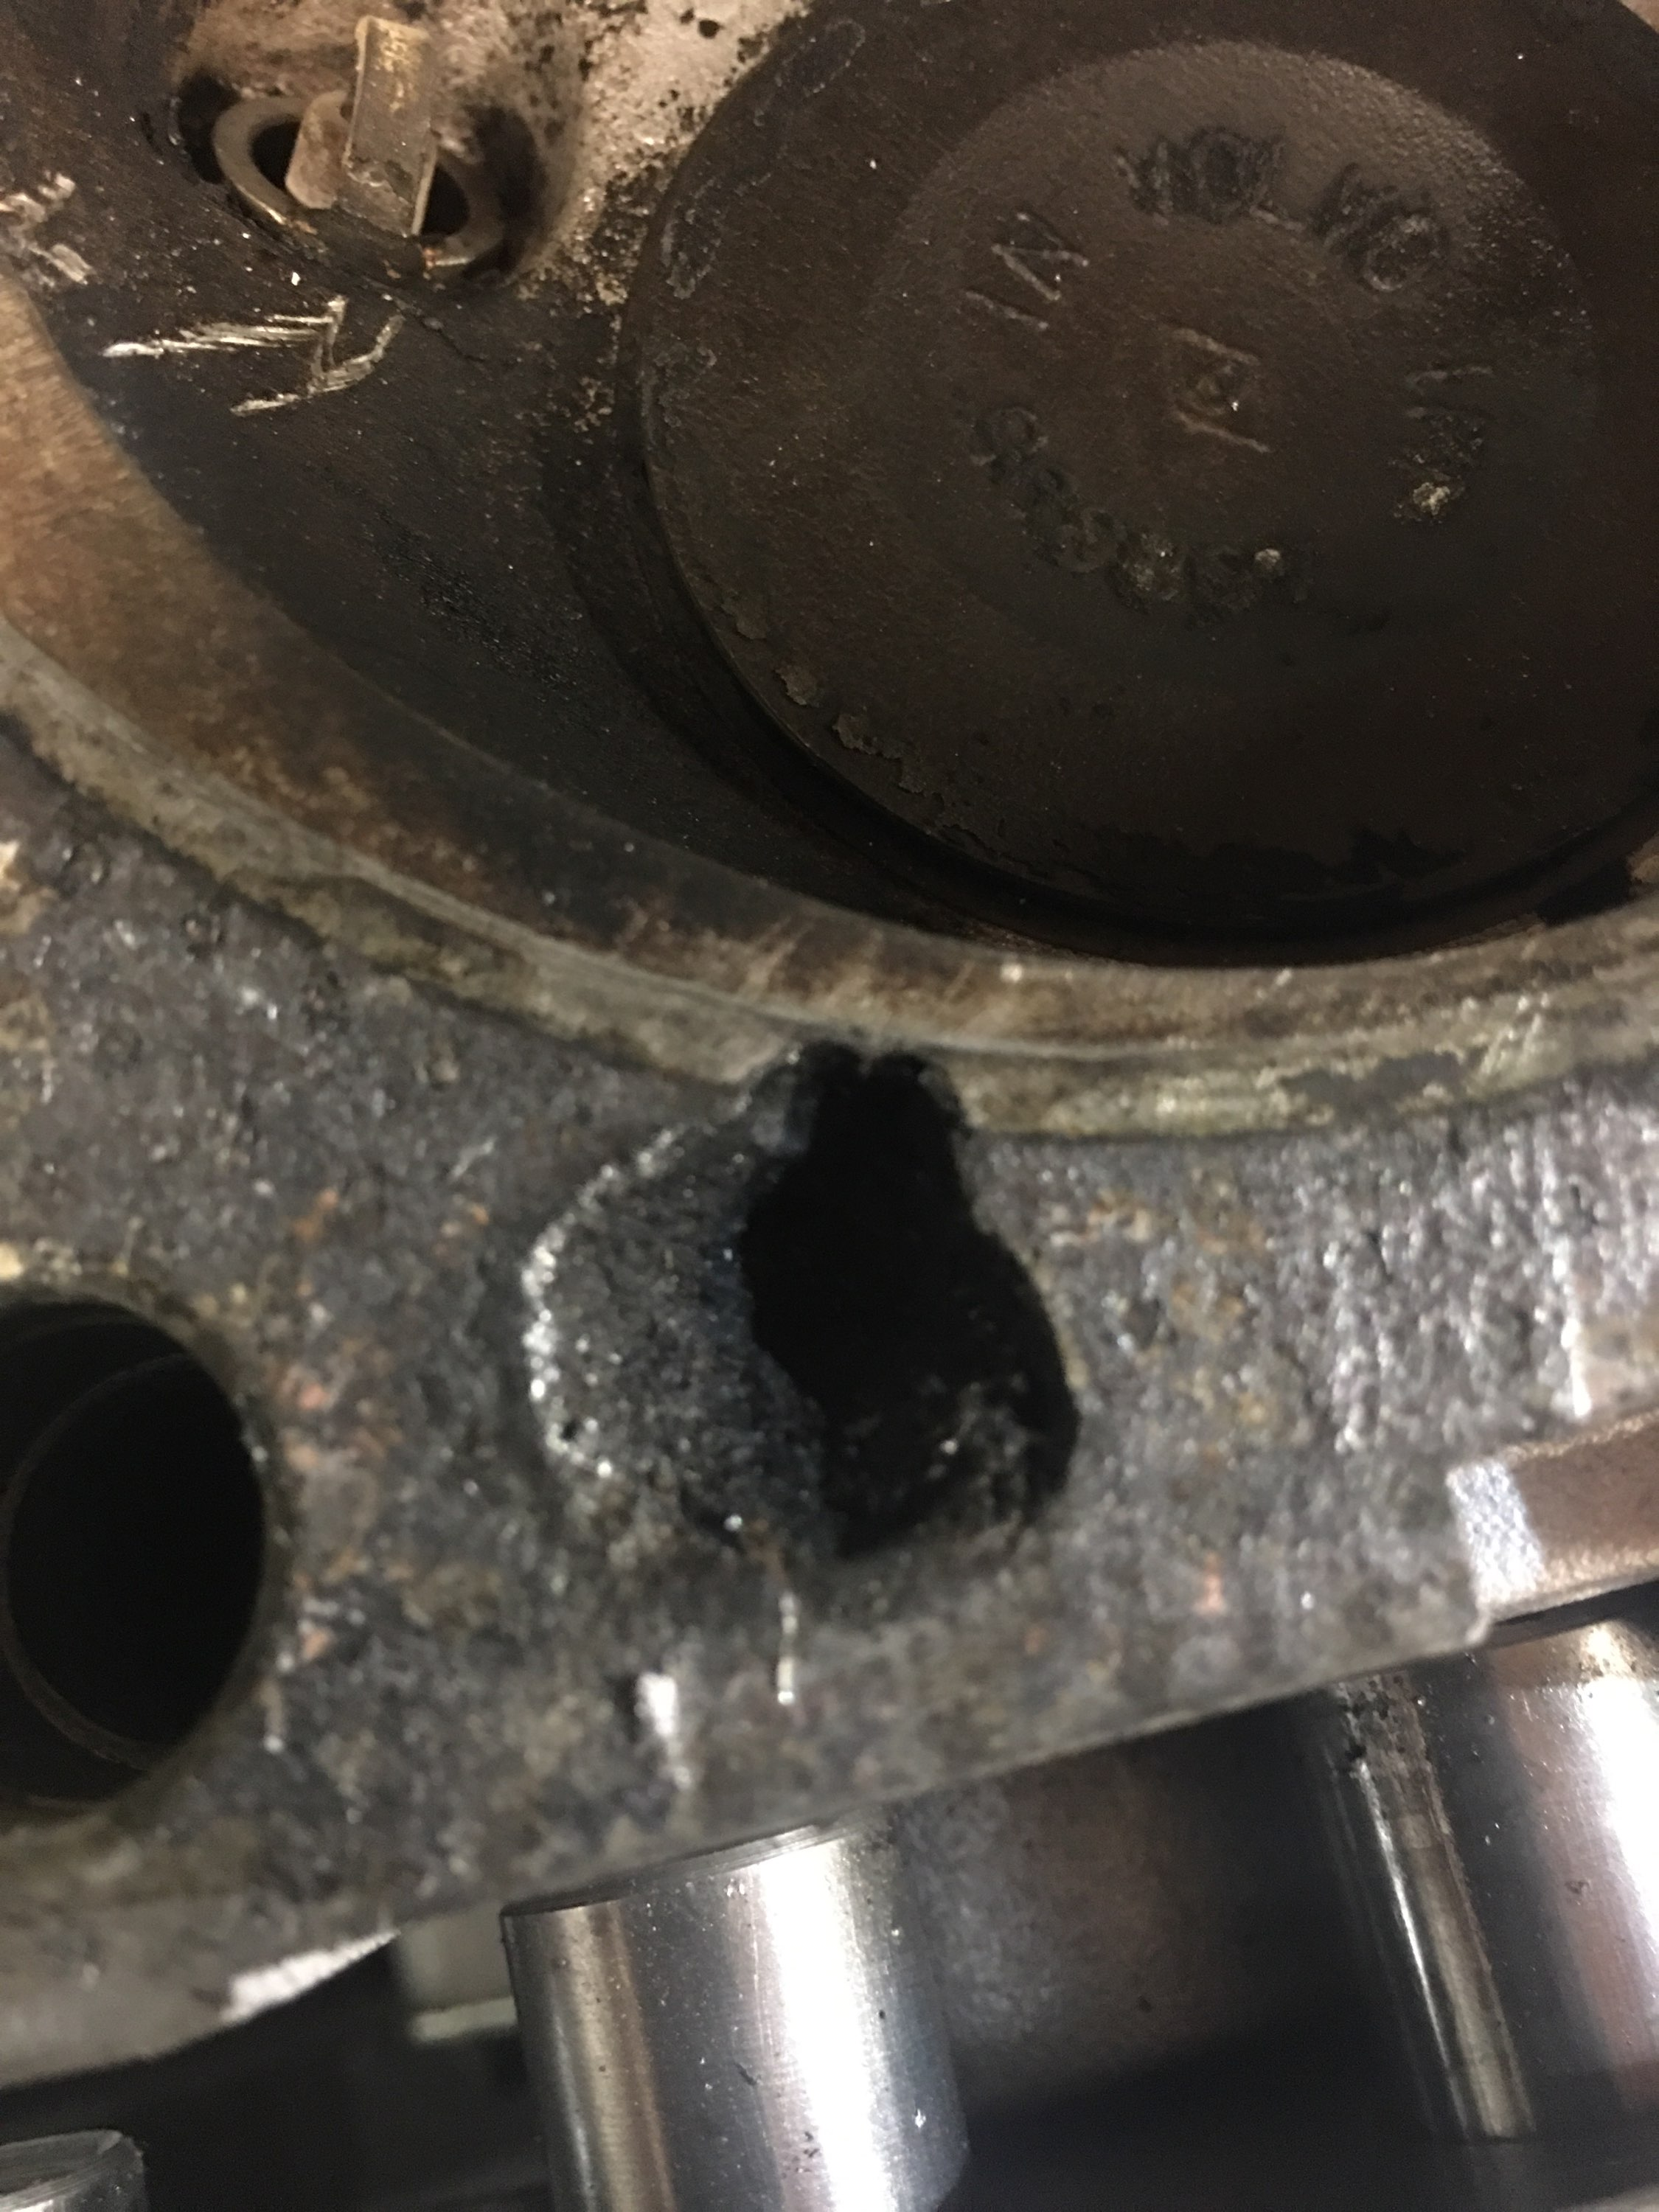 Pitted And Corroded Cylinder Wall Head Surface From Engine Coolant Corrosion Around Water Electrolysis